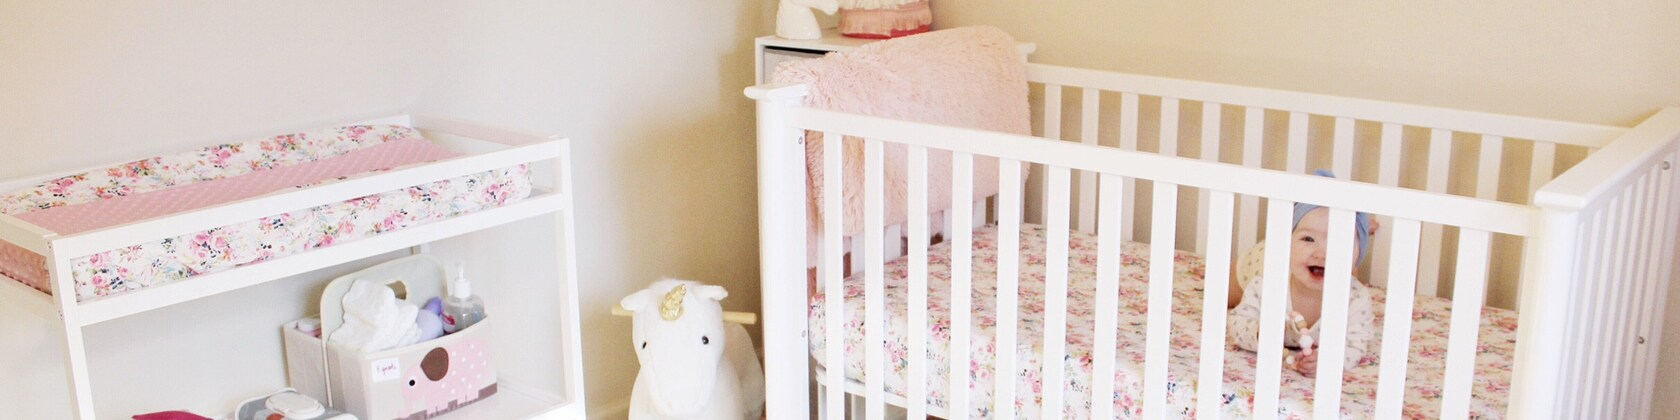 Custom nursery covers for your baby by LittleAngelsEmporium